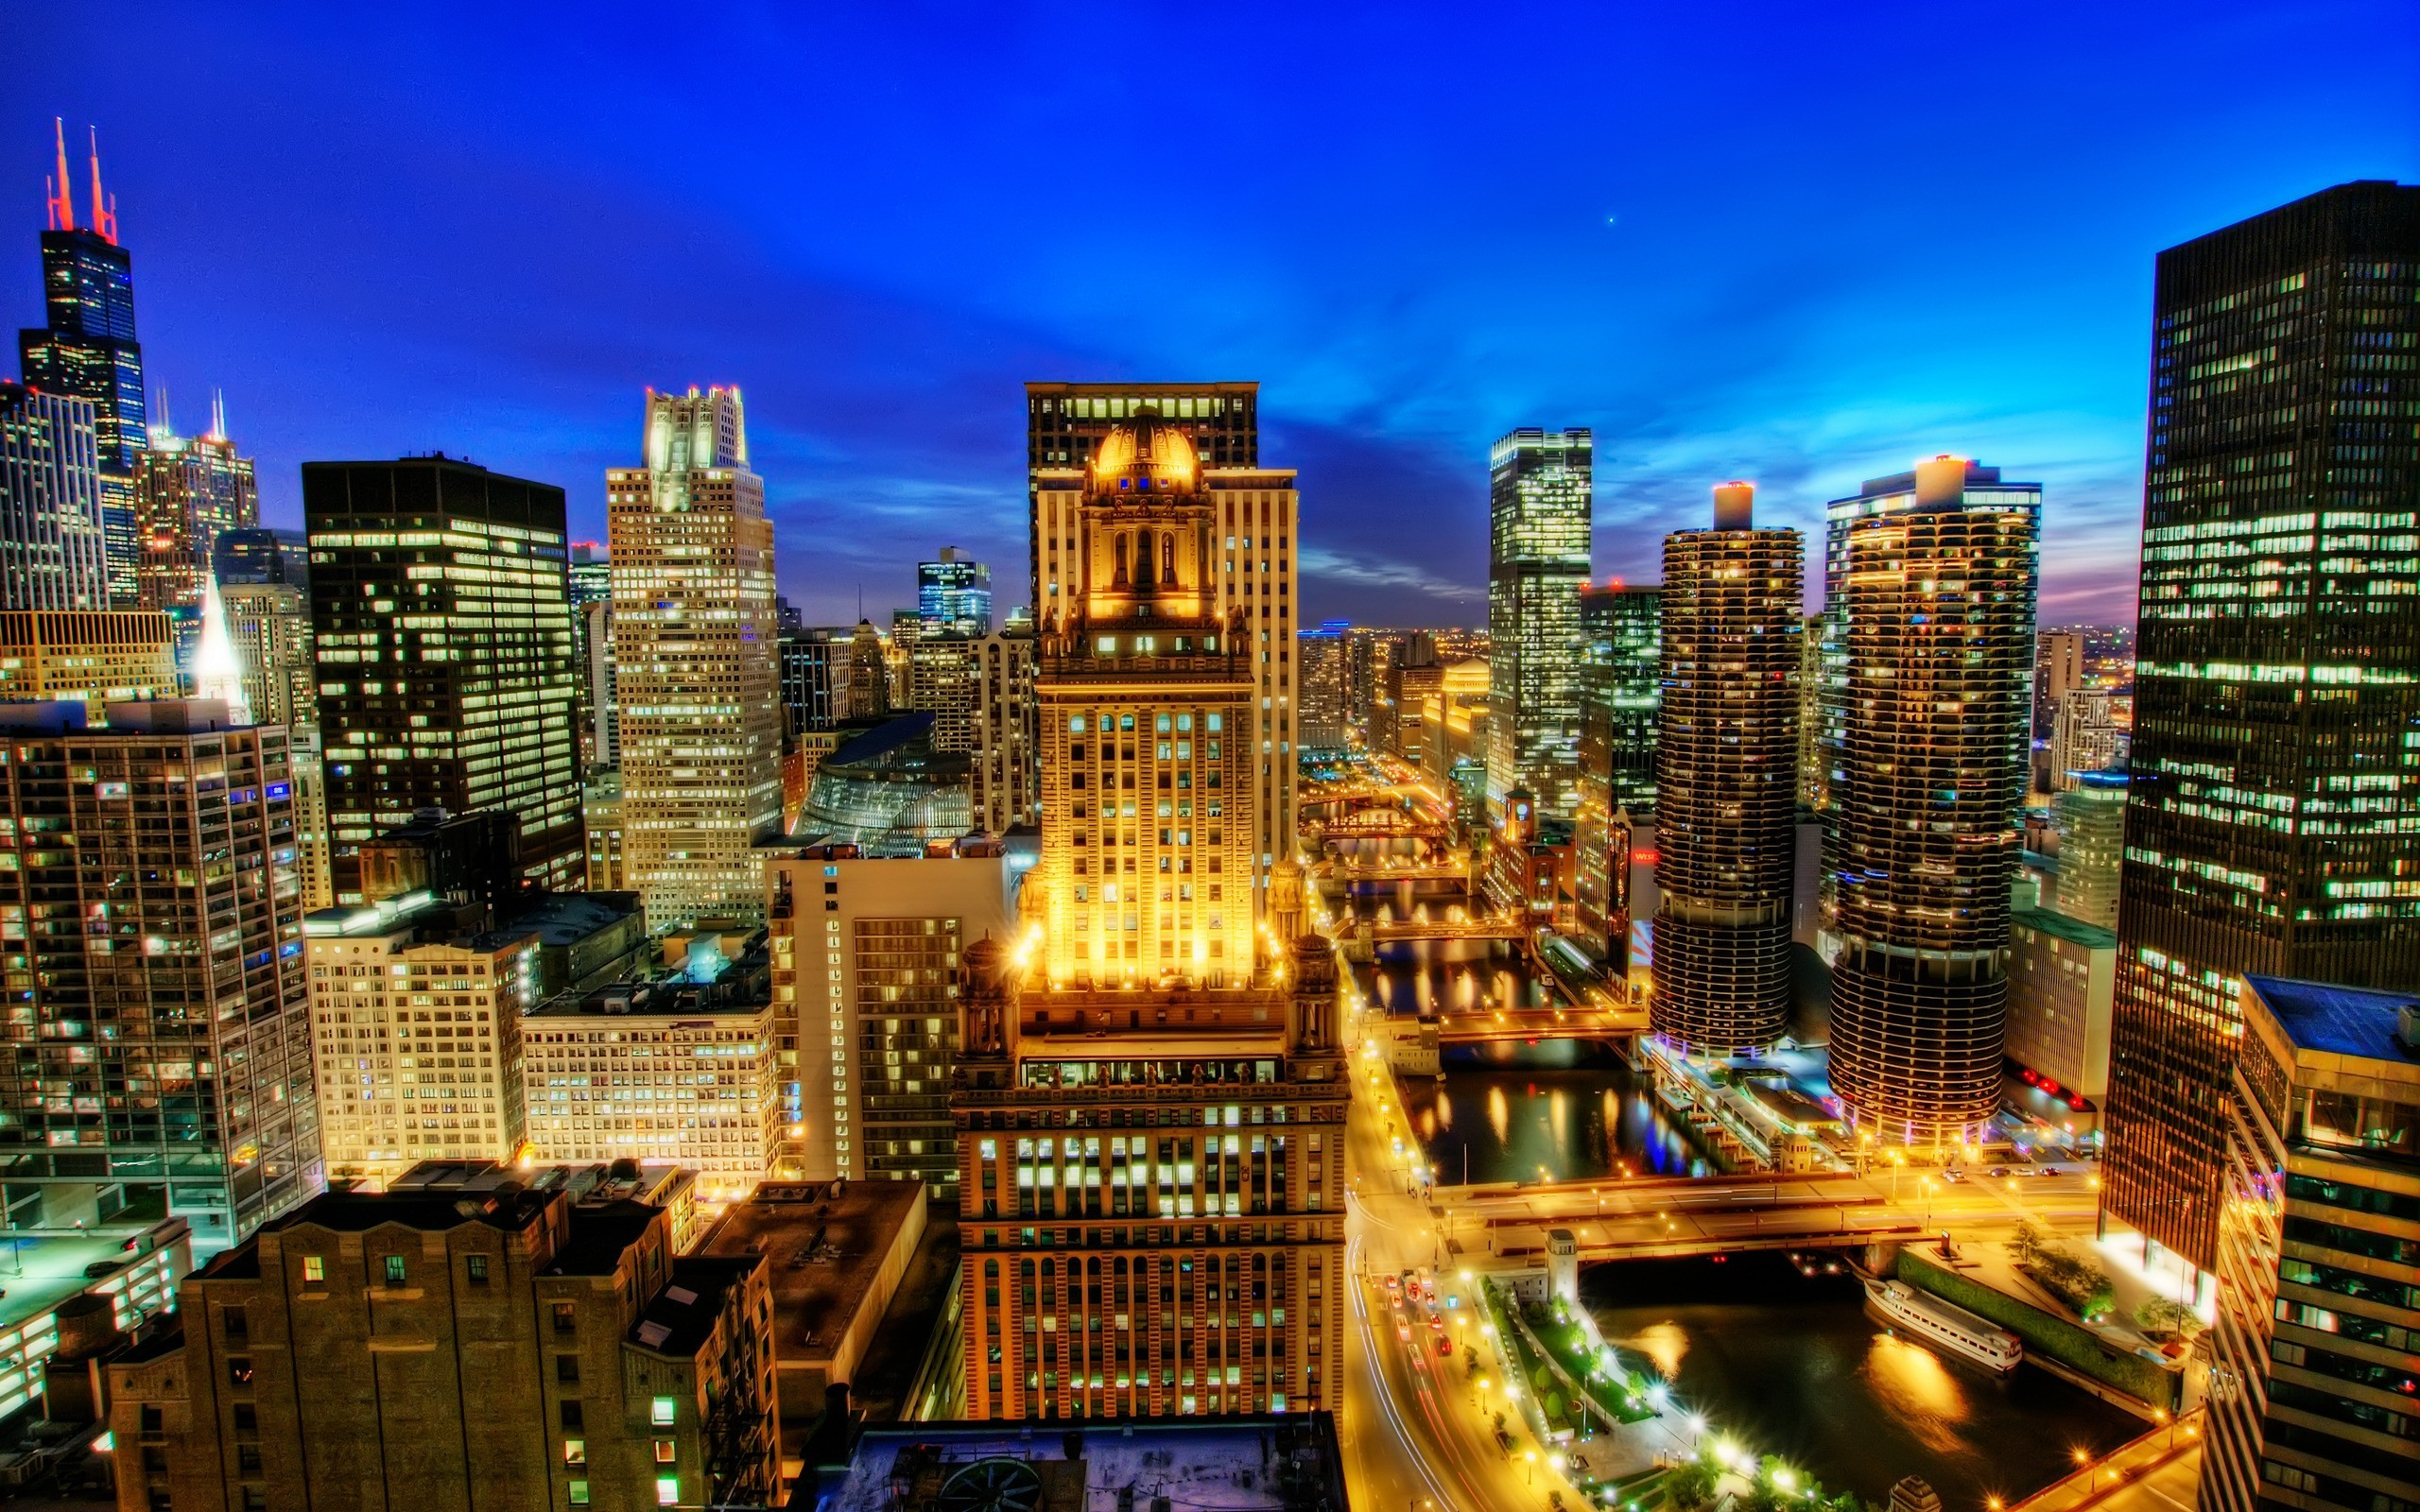 cityscapes Chicago night cities HD Wallpaper